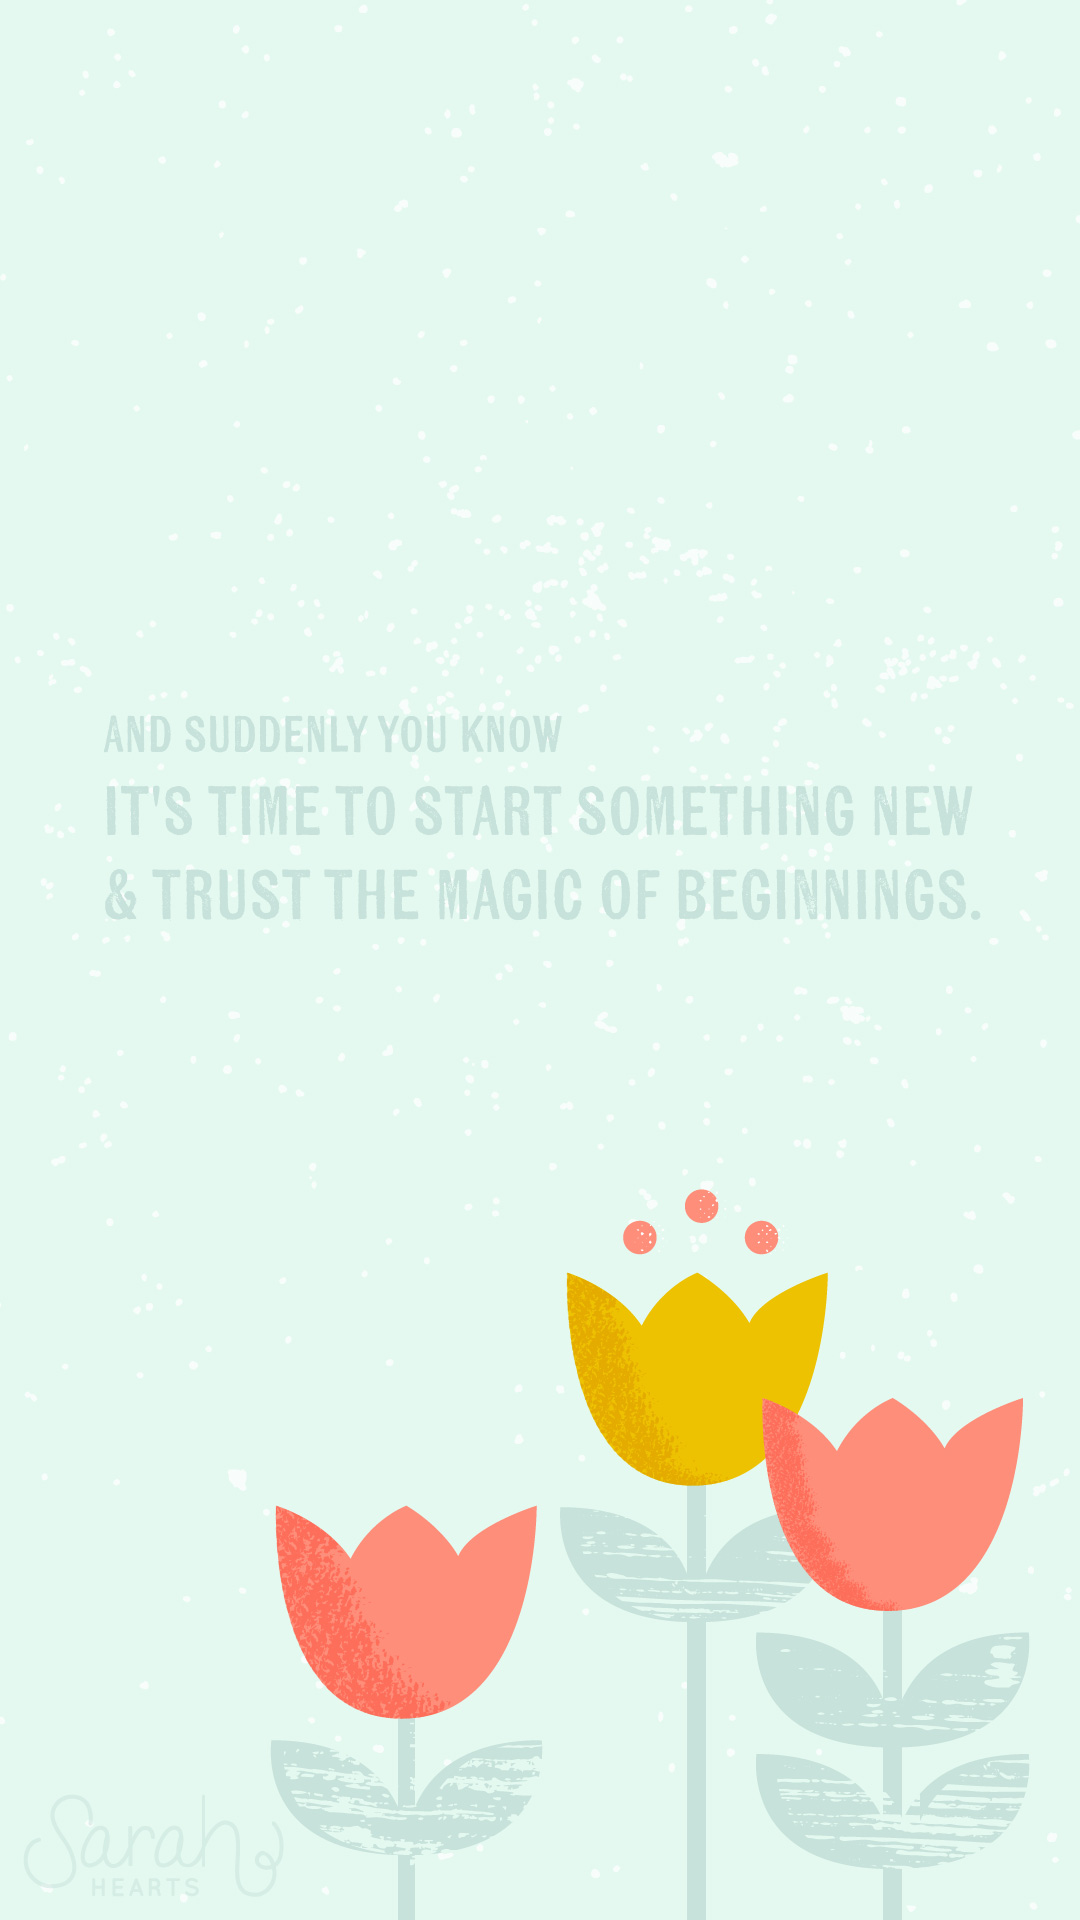 Cute Quote Wallpapers Iphone 5 March 2015 Calendar Wallpaper Sarah Hearts